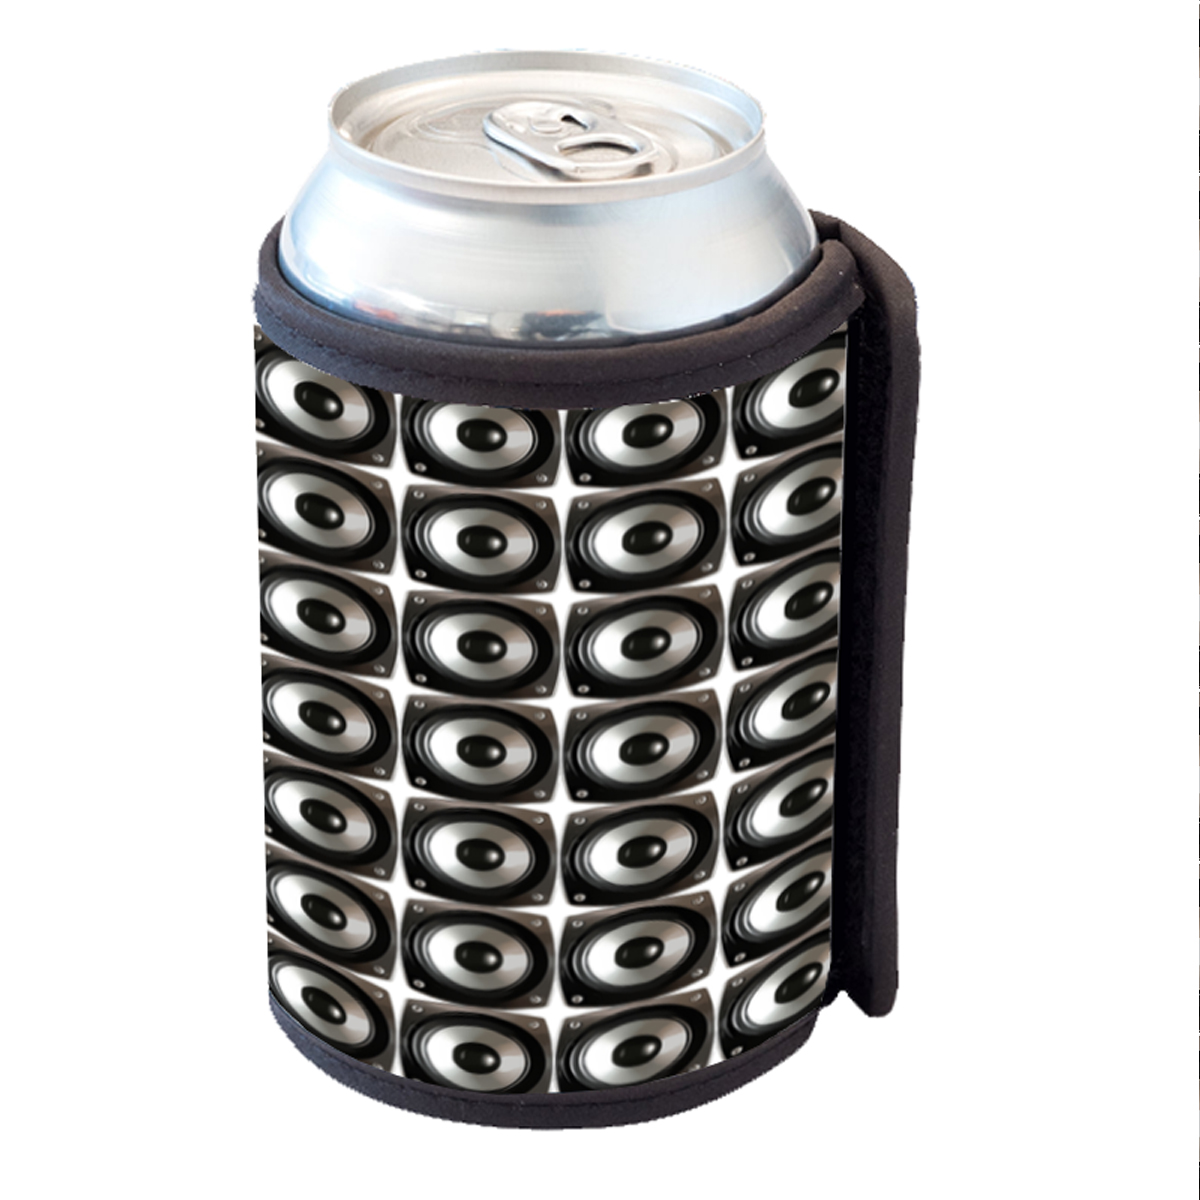 KuzmarK Insulated Drink Can Cooler Hugger - Speaker Speakers